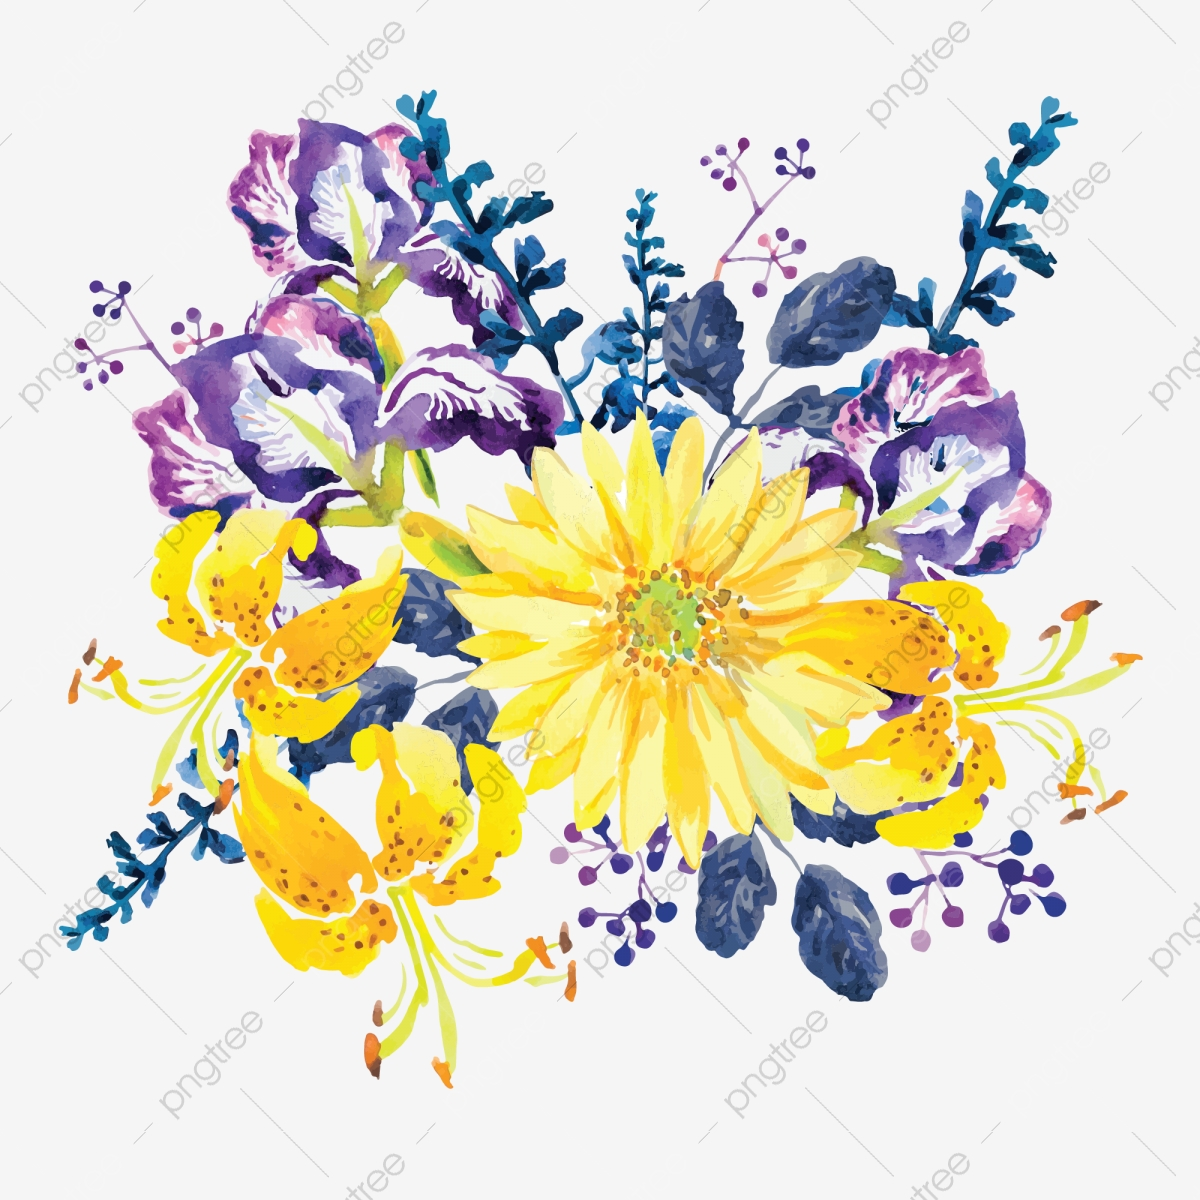 Flower Vector 73000 Flower Graphic Resources For Free Download